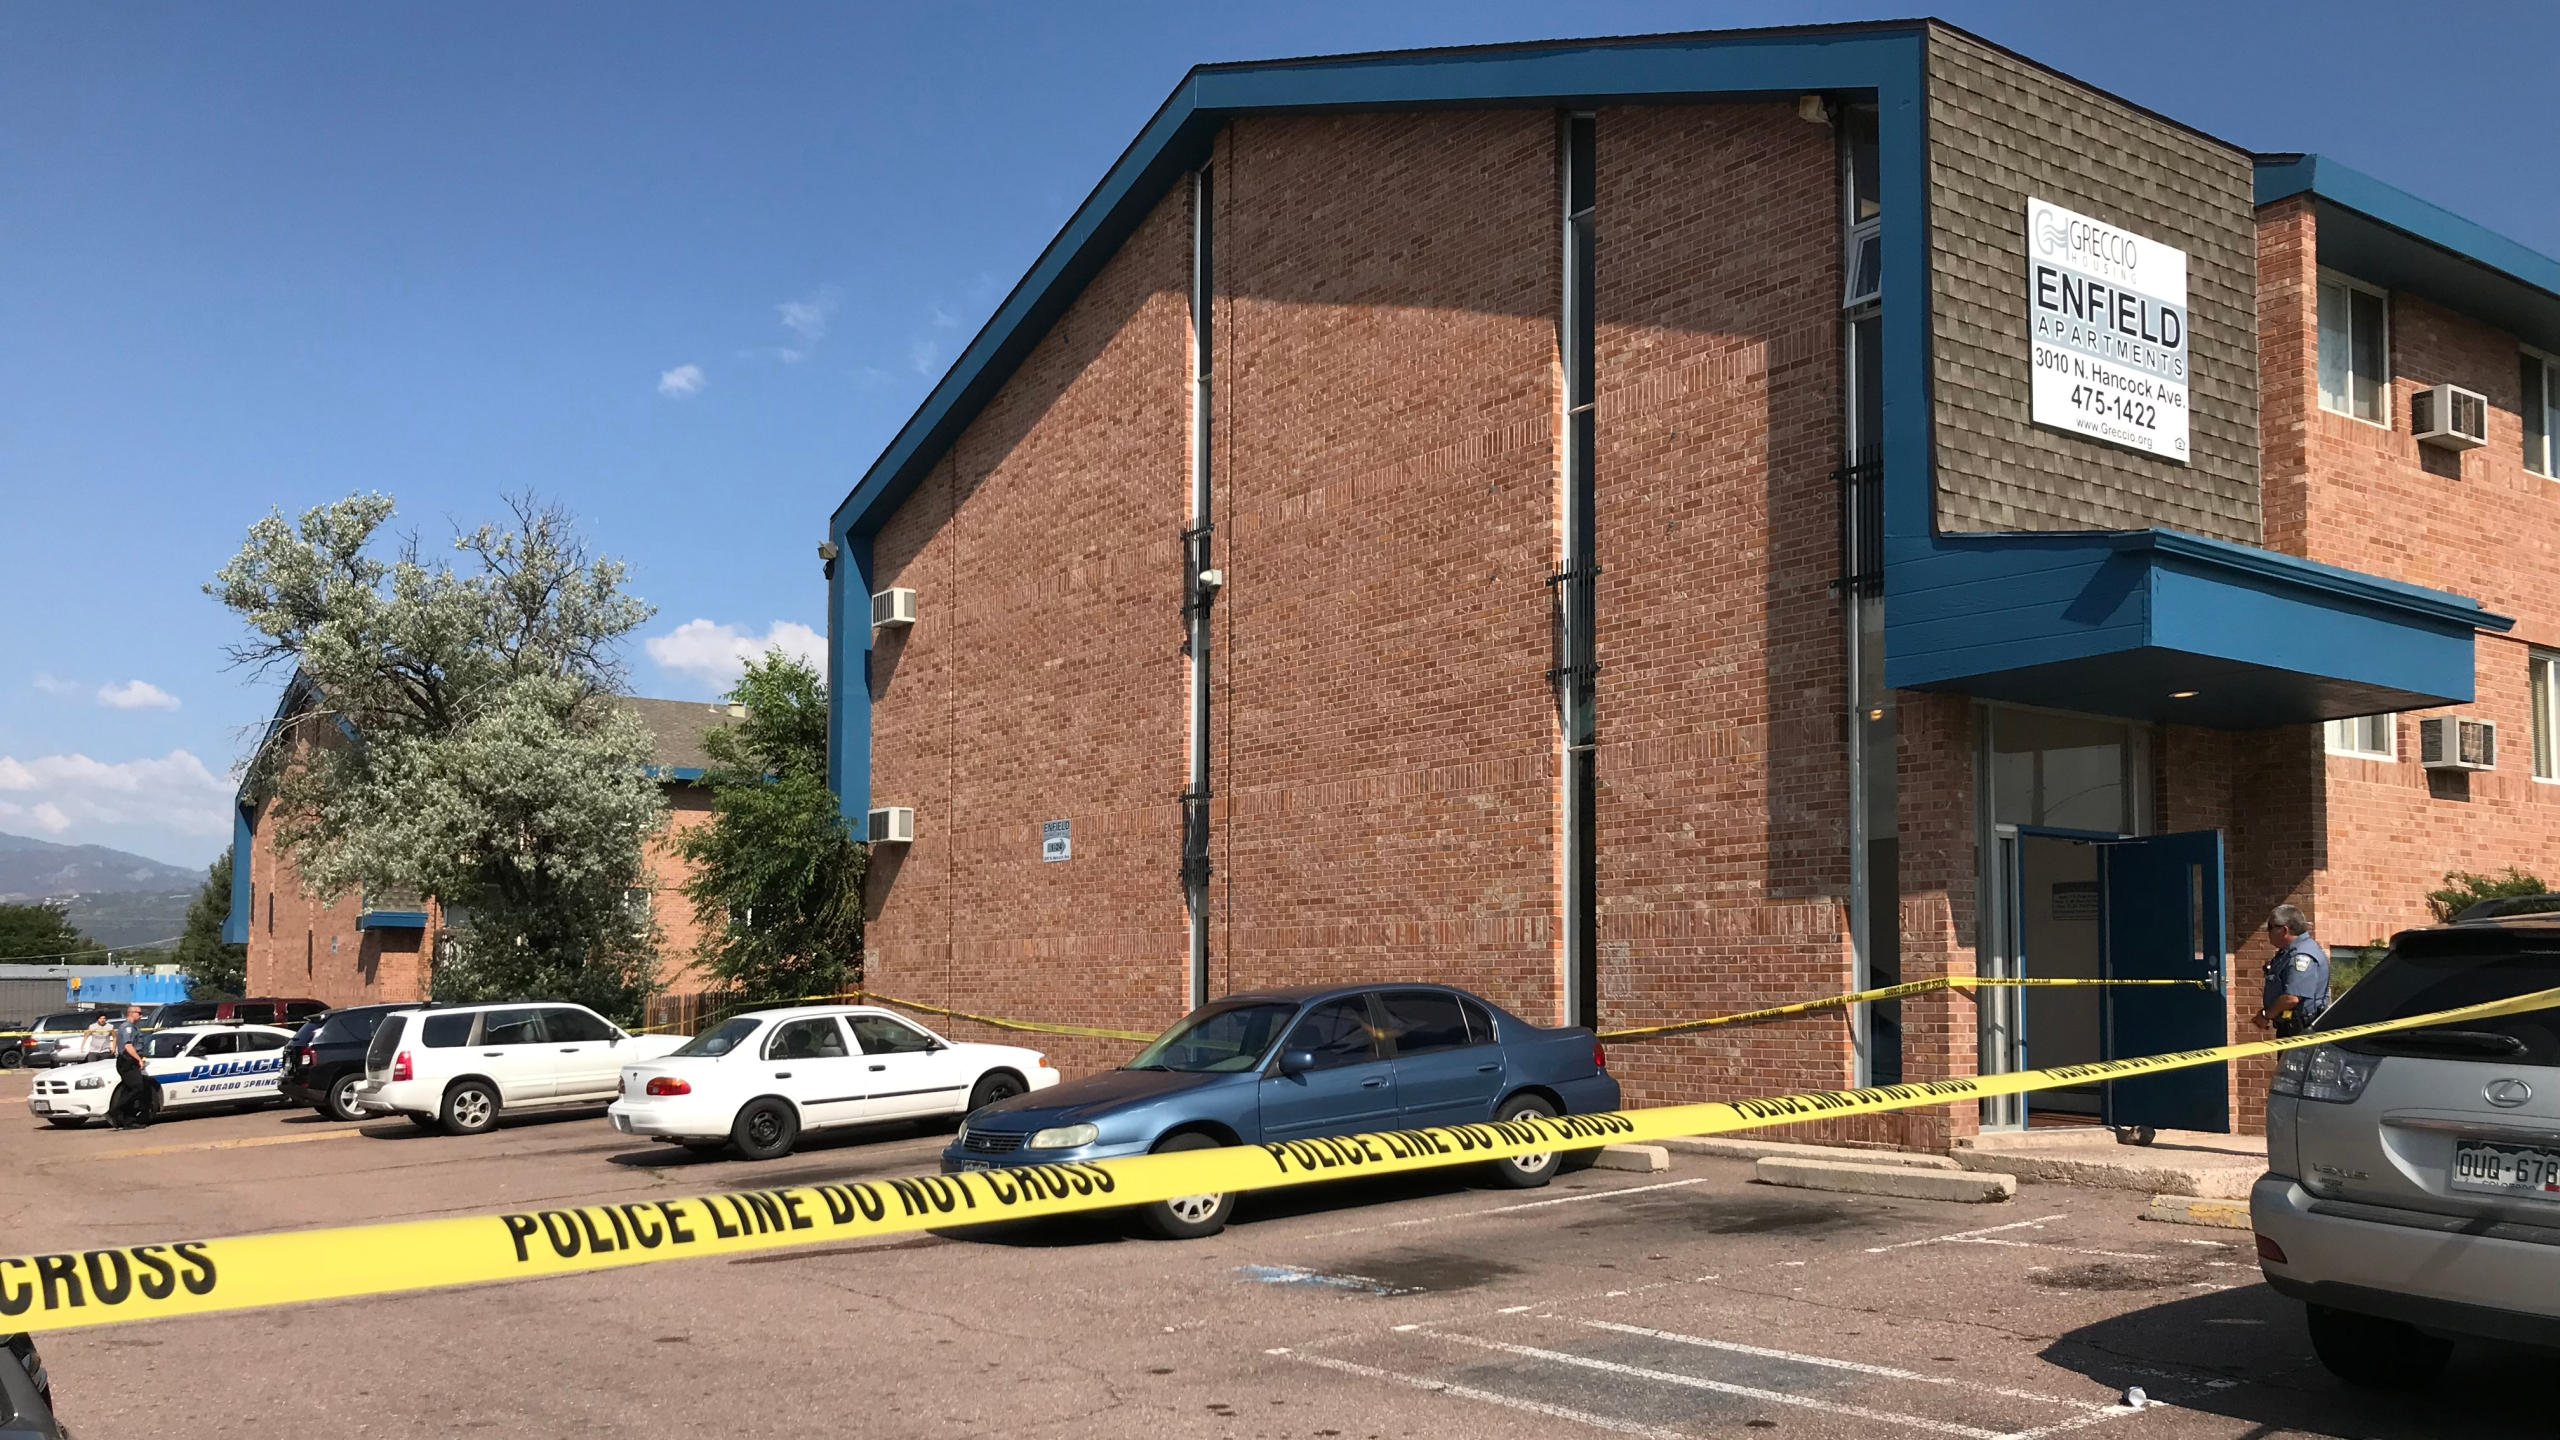 Police investigating a suspicious death at the Enfield Apartments on Hancock Avenue Friday morning. Shawn Shanle - FOX21 News